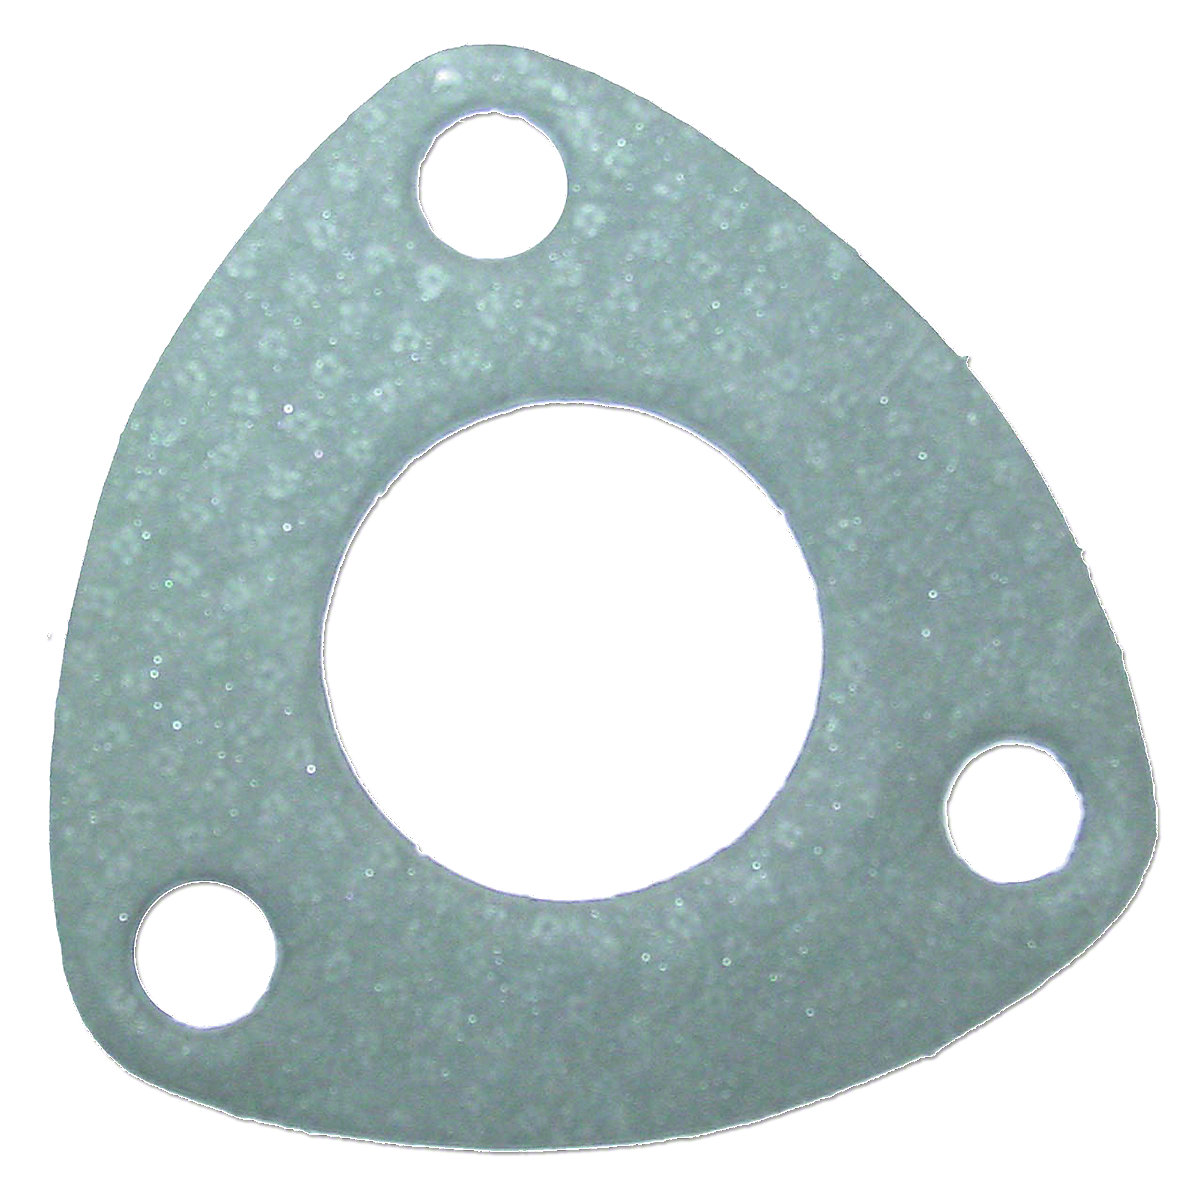 Exhaust Pre-Muffler Elbow Gasket For: 20, 35, 135, 202, 203, 204, 205, 2135, z-134, z-145, FE35, TO35.